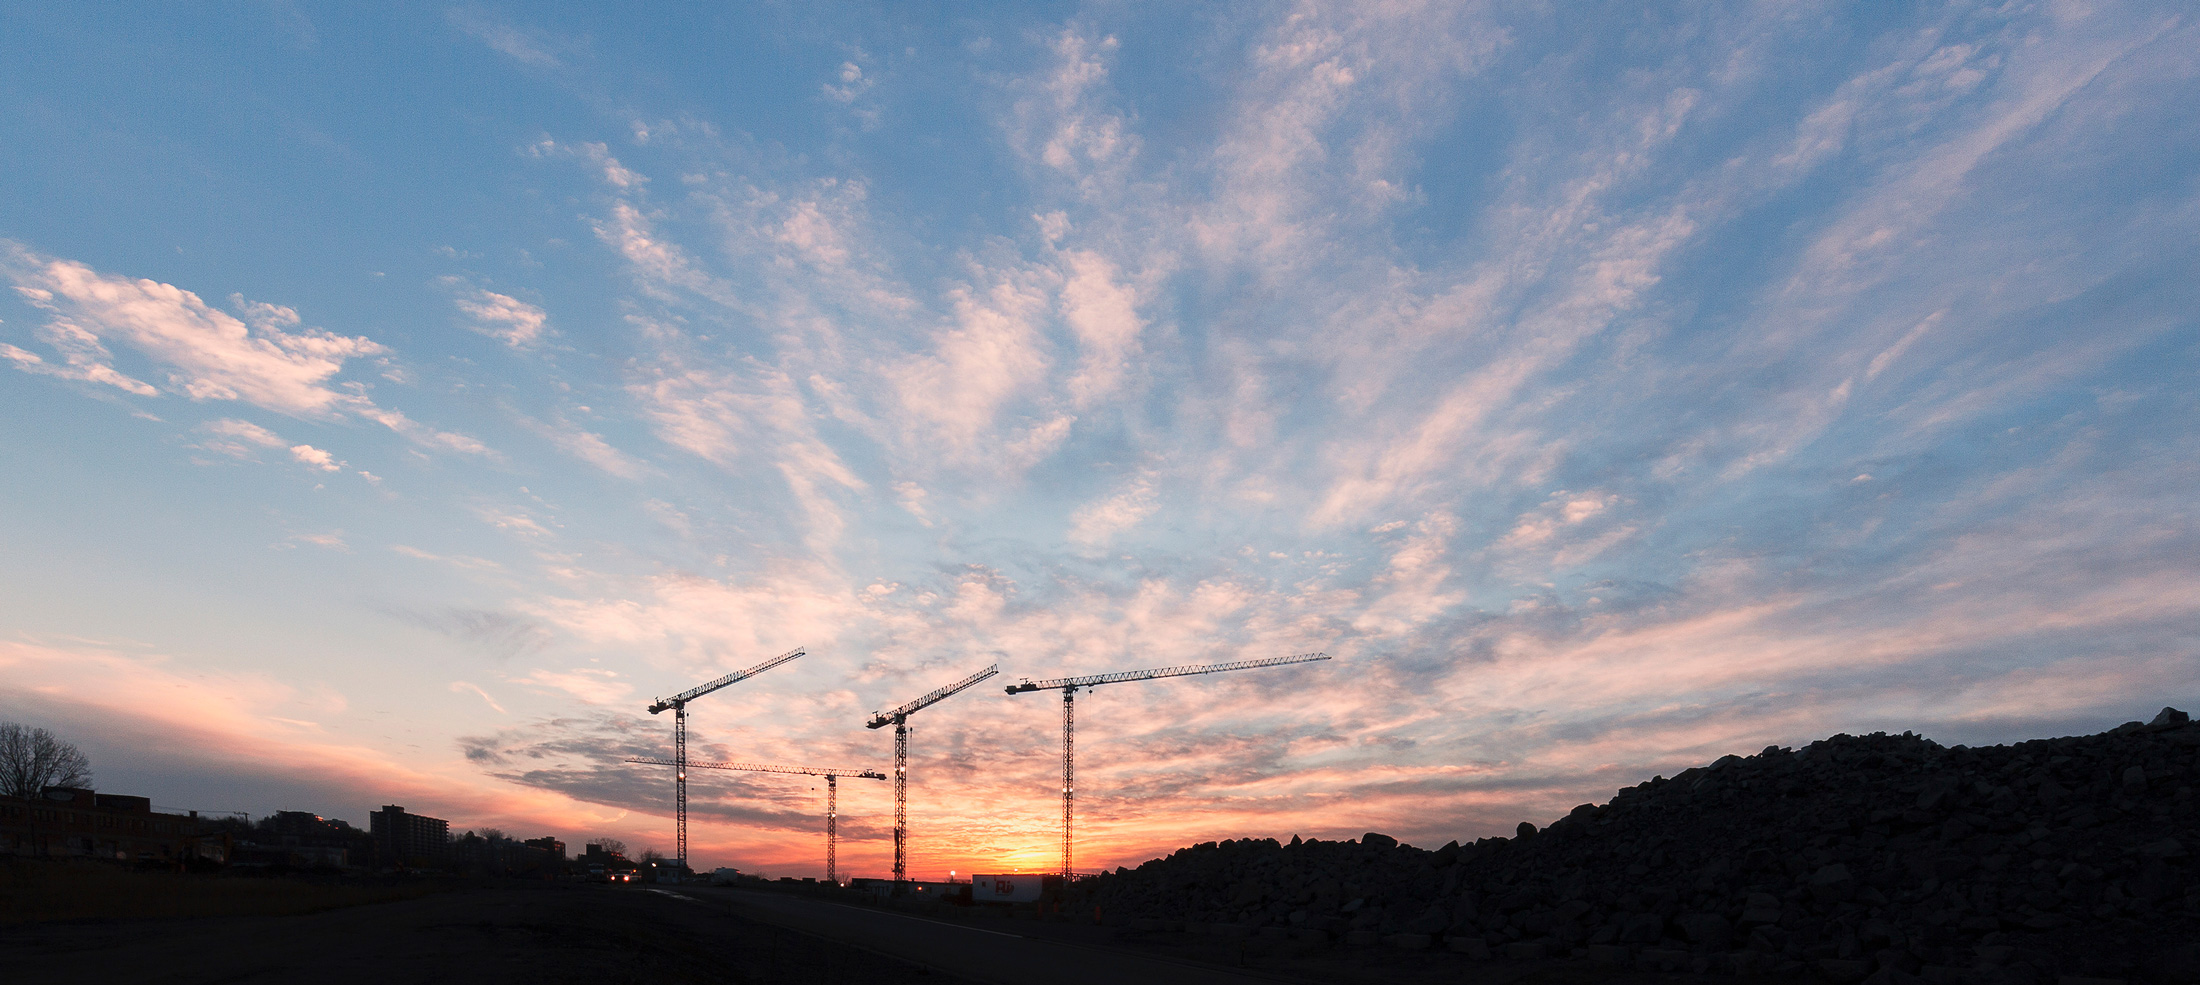 paysage urbain grues coucher soleil